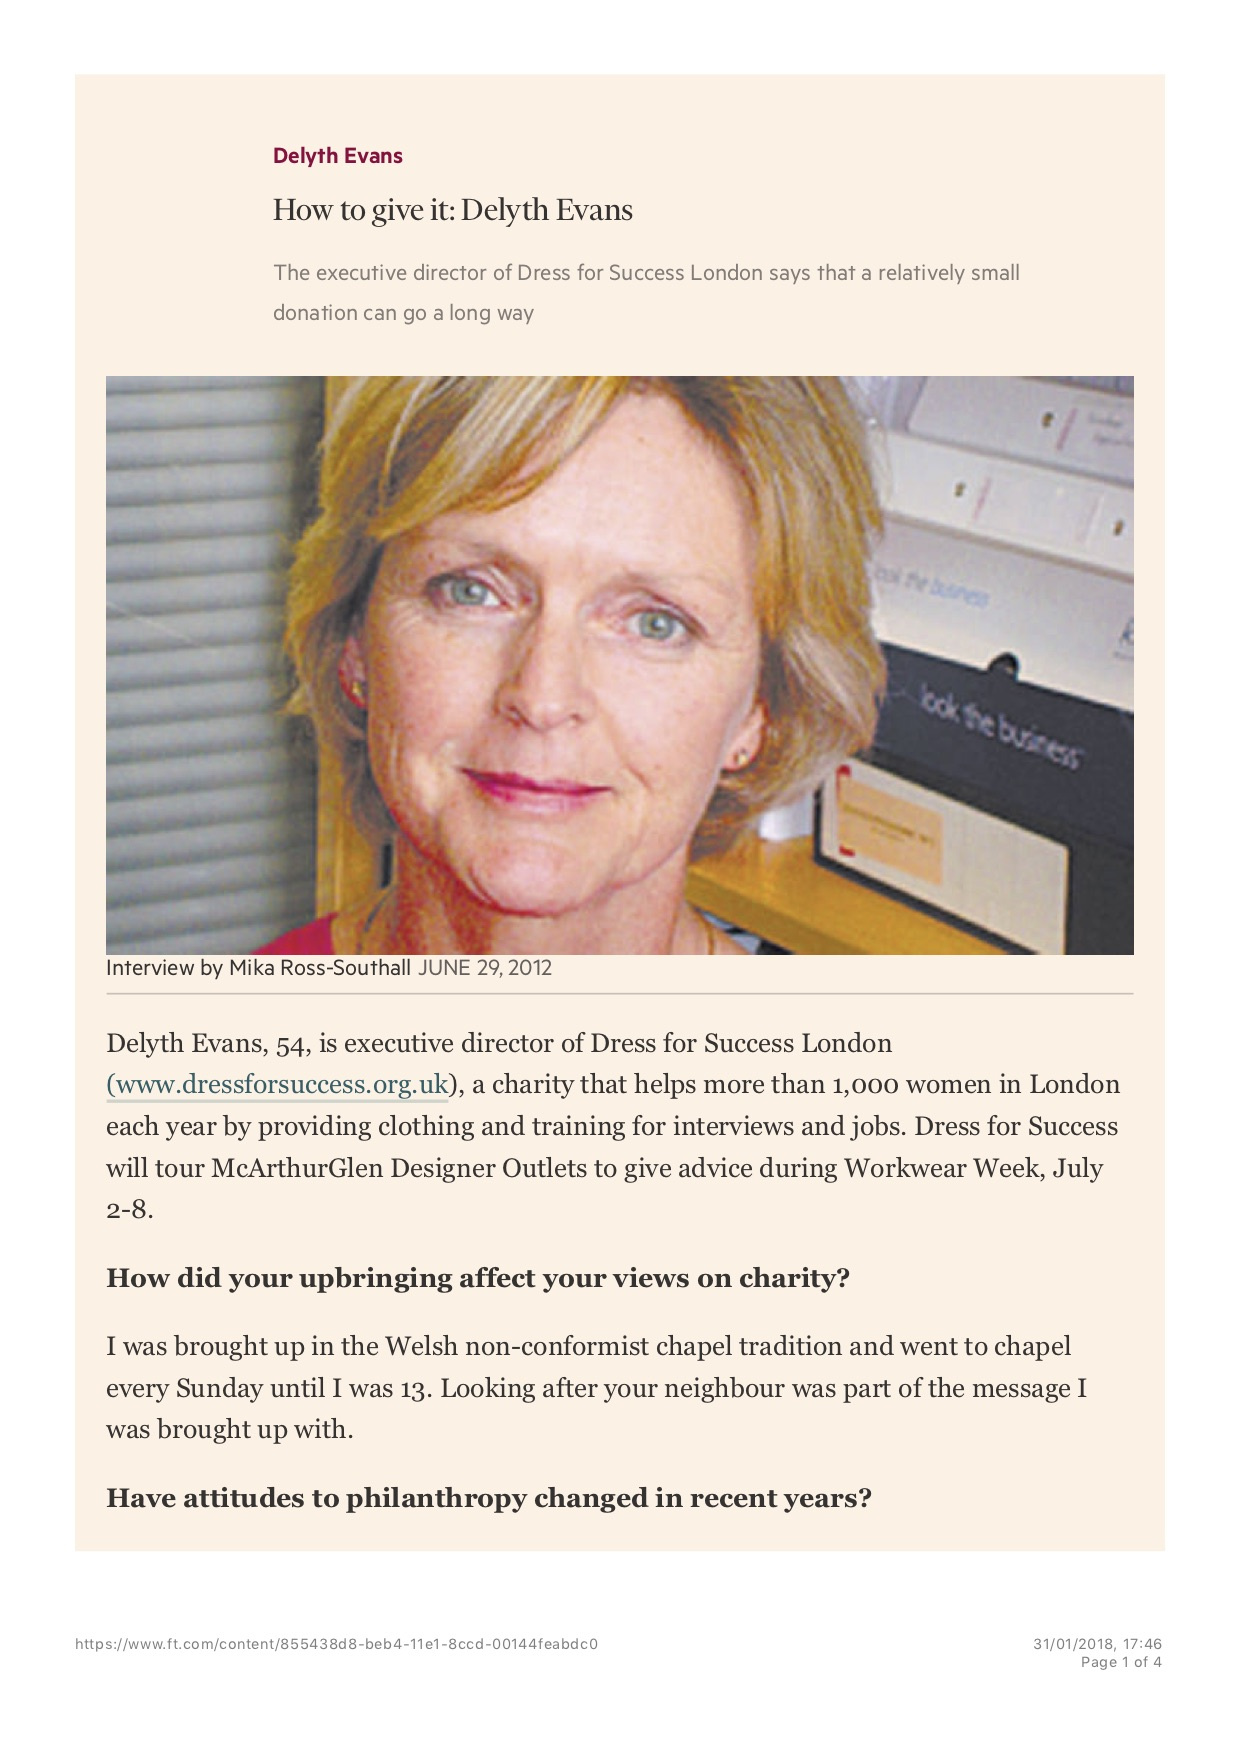 How to Give It: Delyth Evans, Published in the Financial Times Weekend Life & Arts (print), 29 June 2012